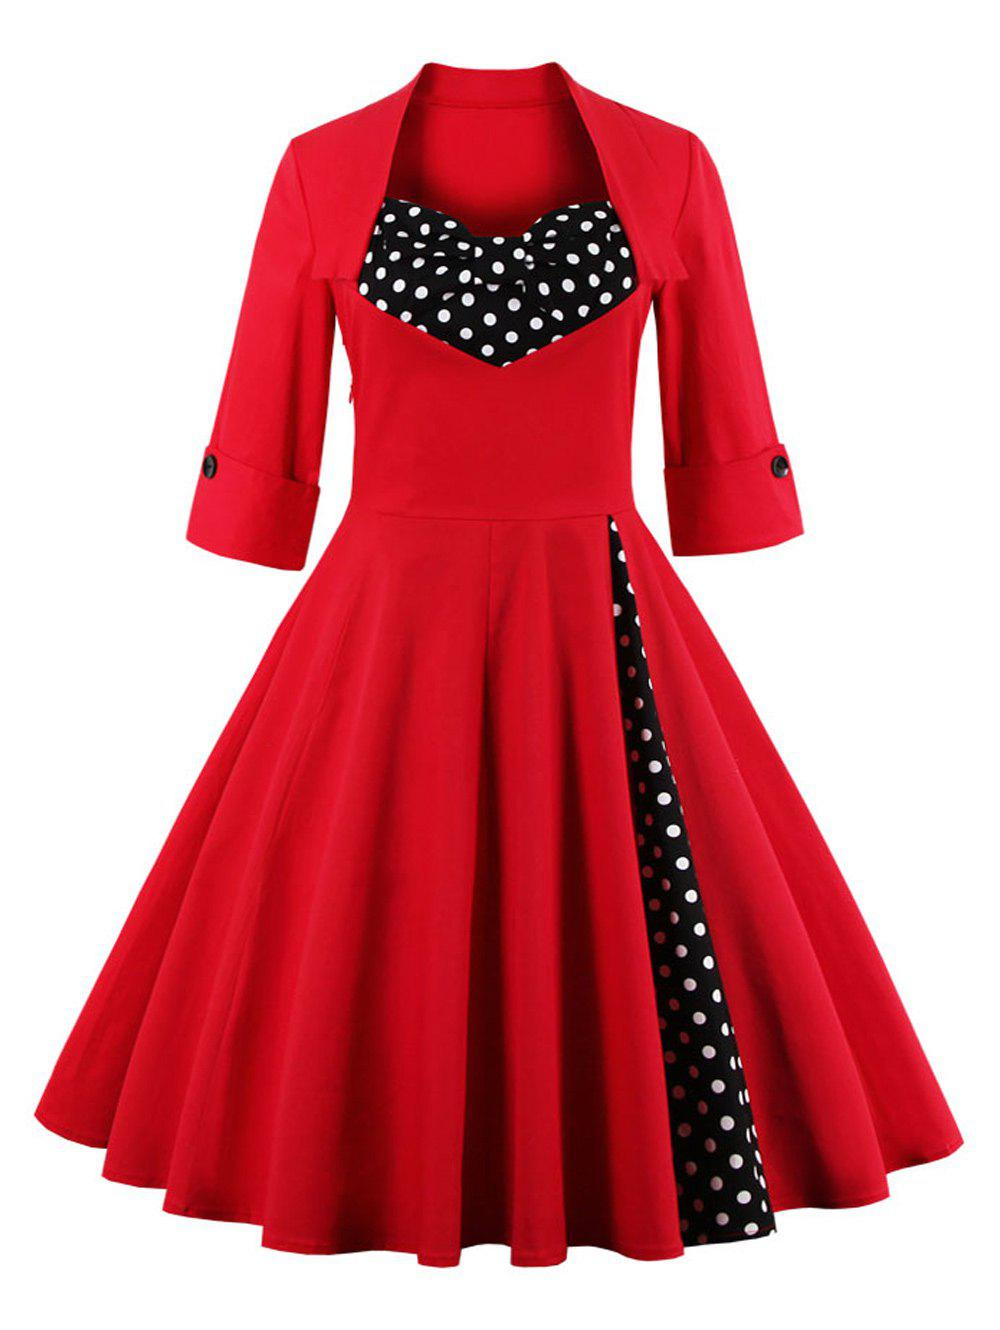 Bowknot Panel Flare Rockabilly Swing Dress - RED 4XL